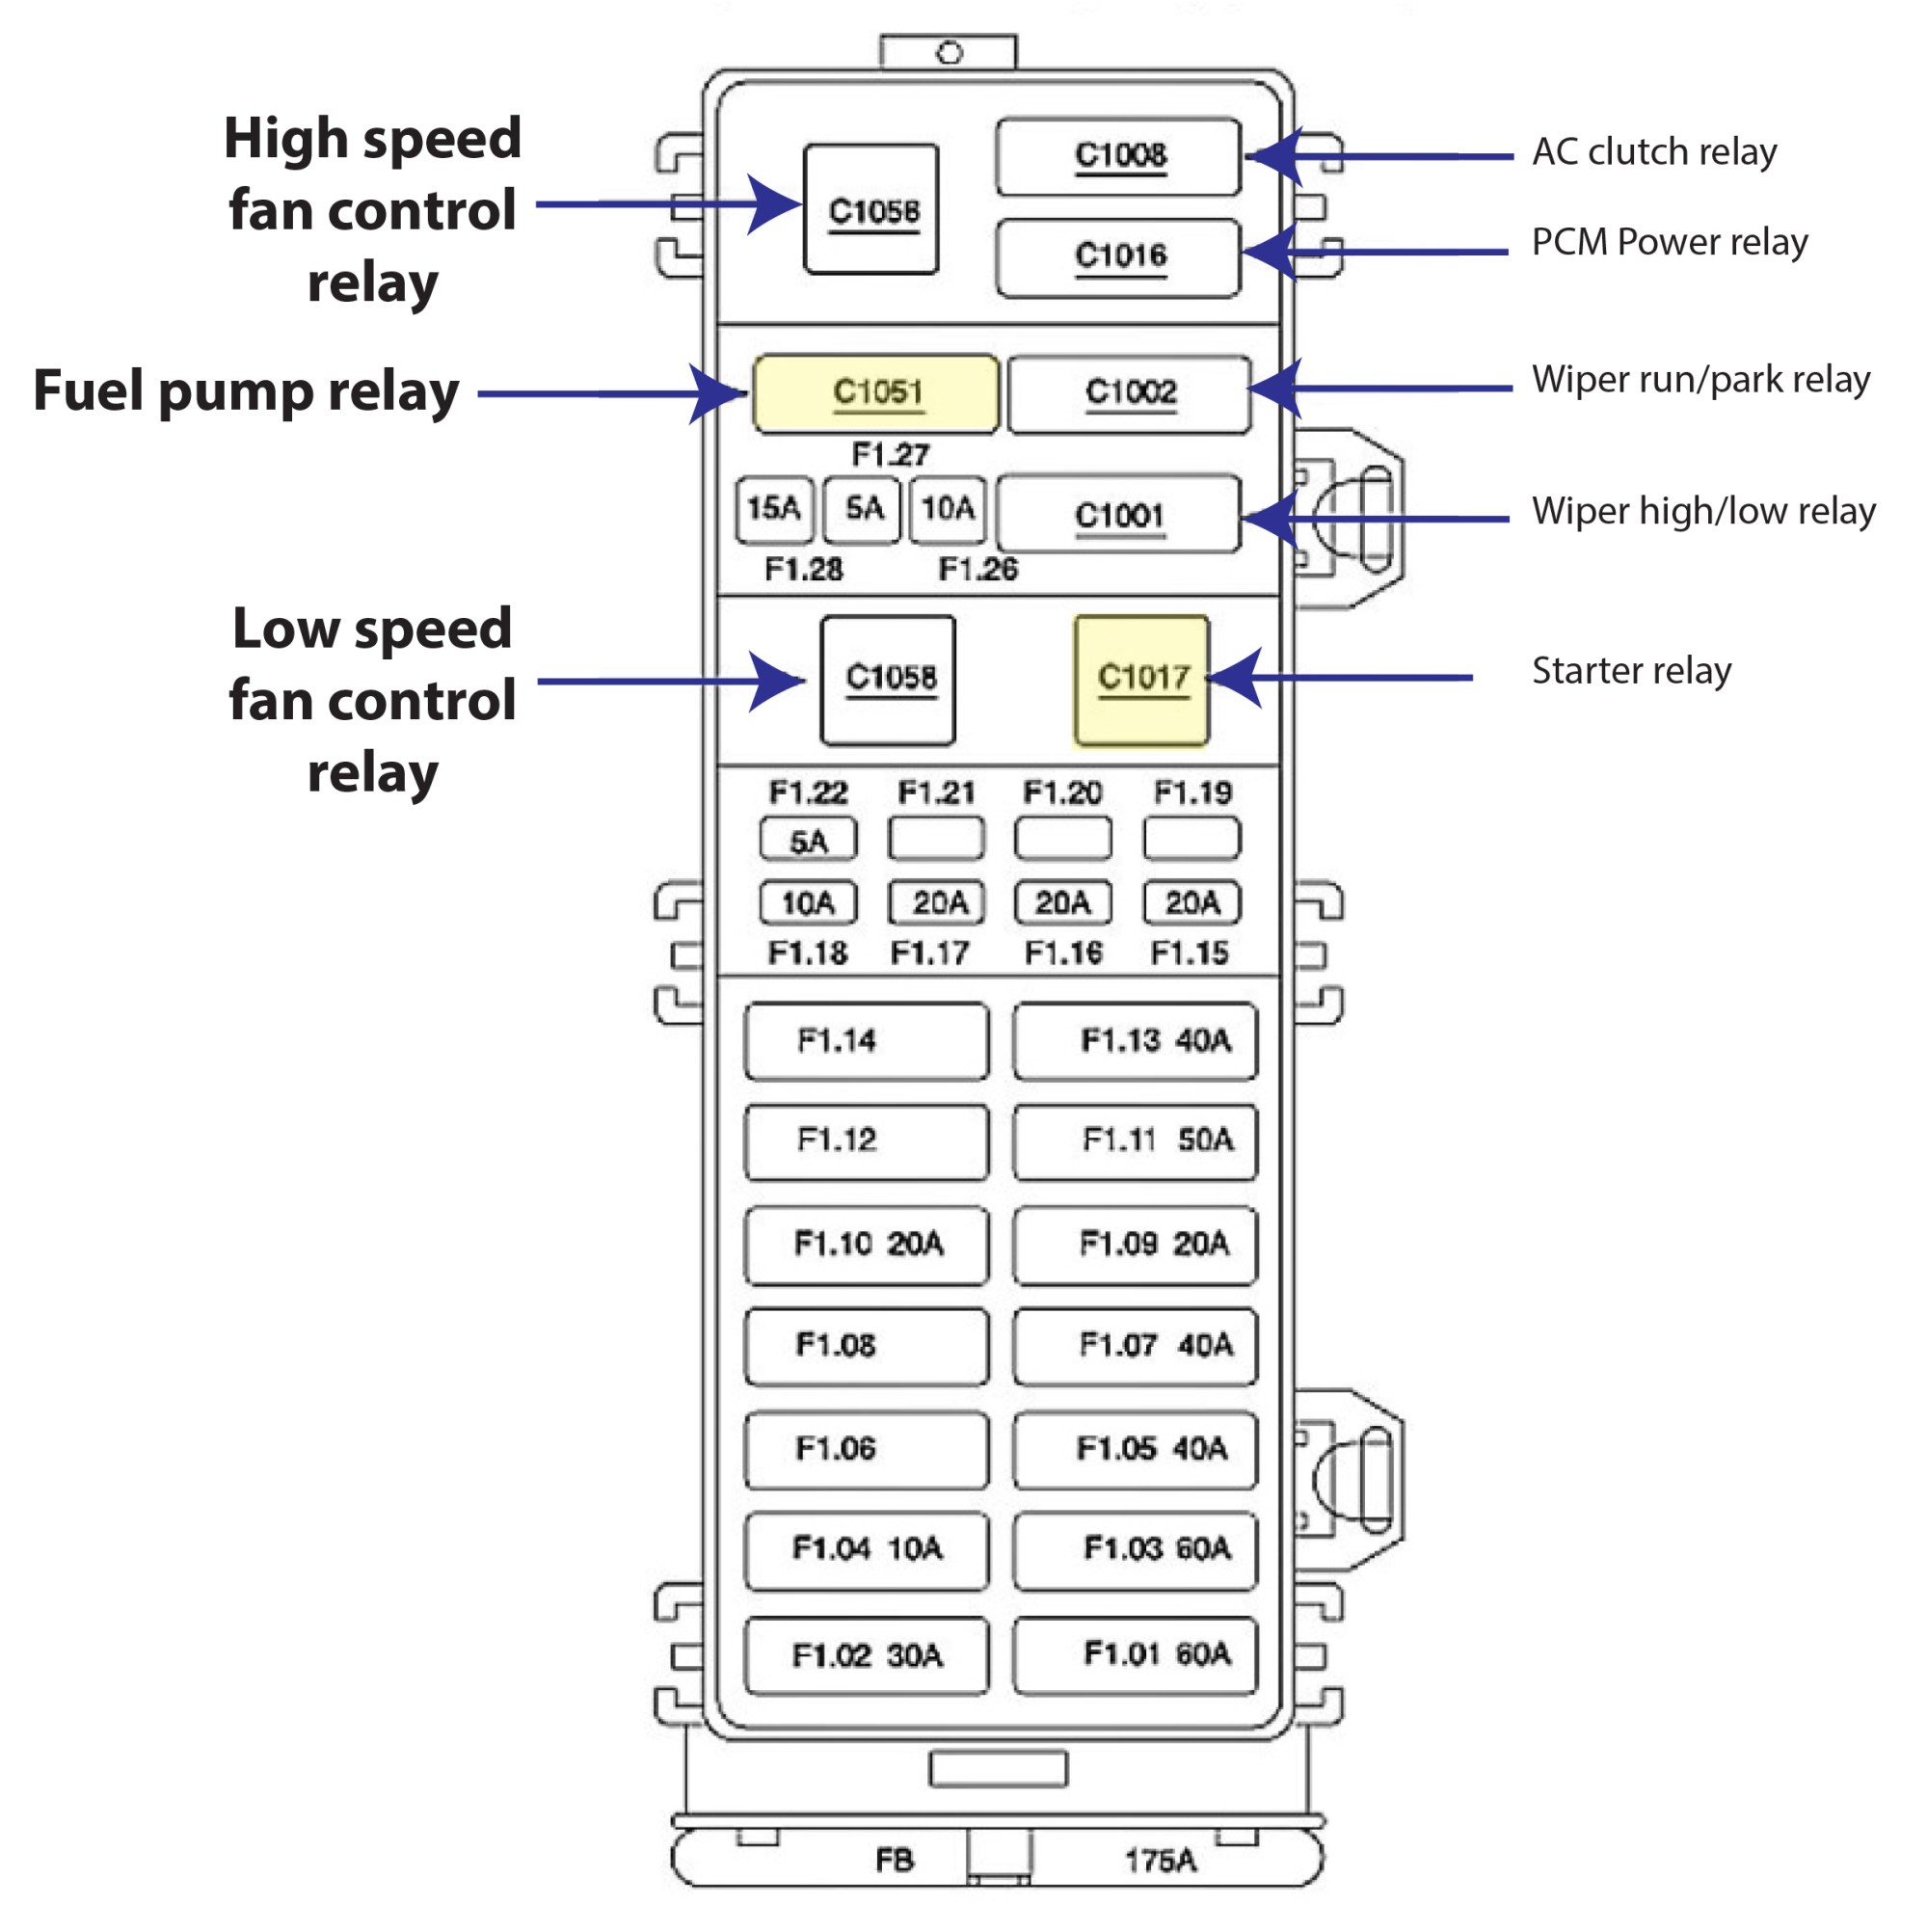 hight resolution of 2006 ford fuse box diagram wiring diagram 2006 ford e350 fuse panel diagram battery junction box